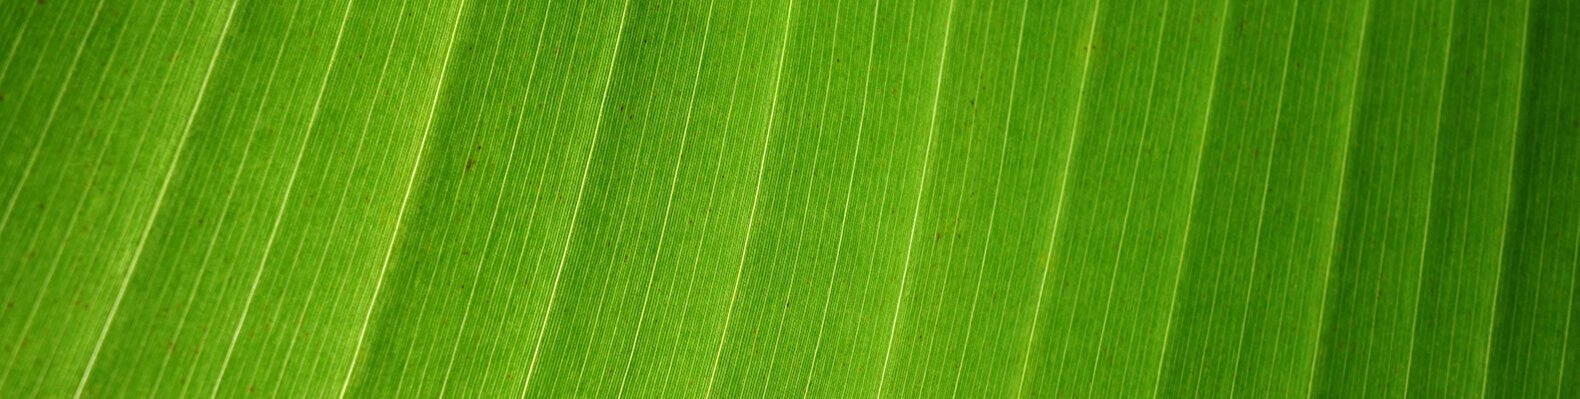 close-up of a banana leaf